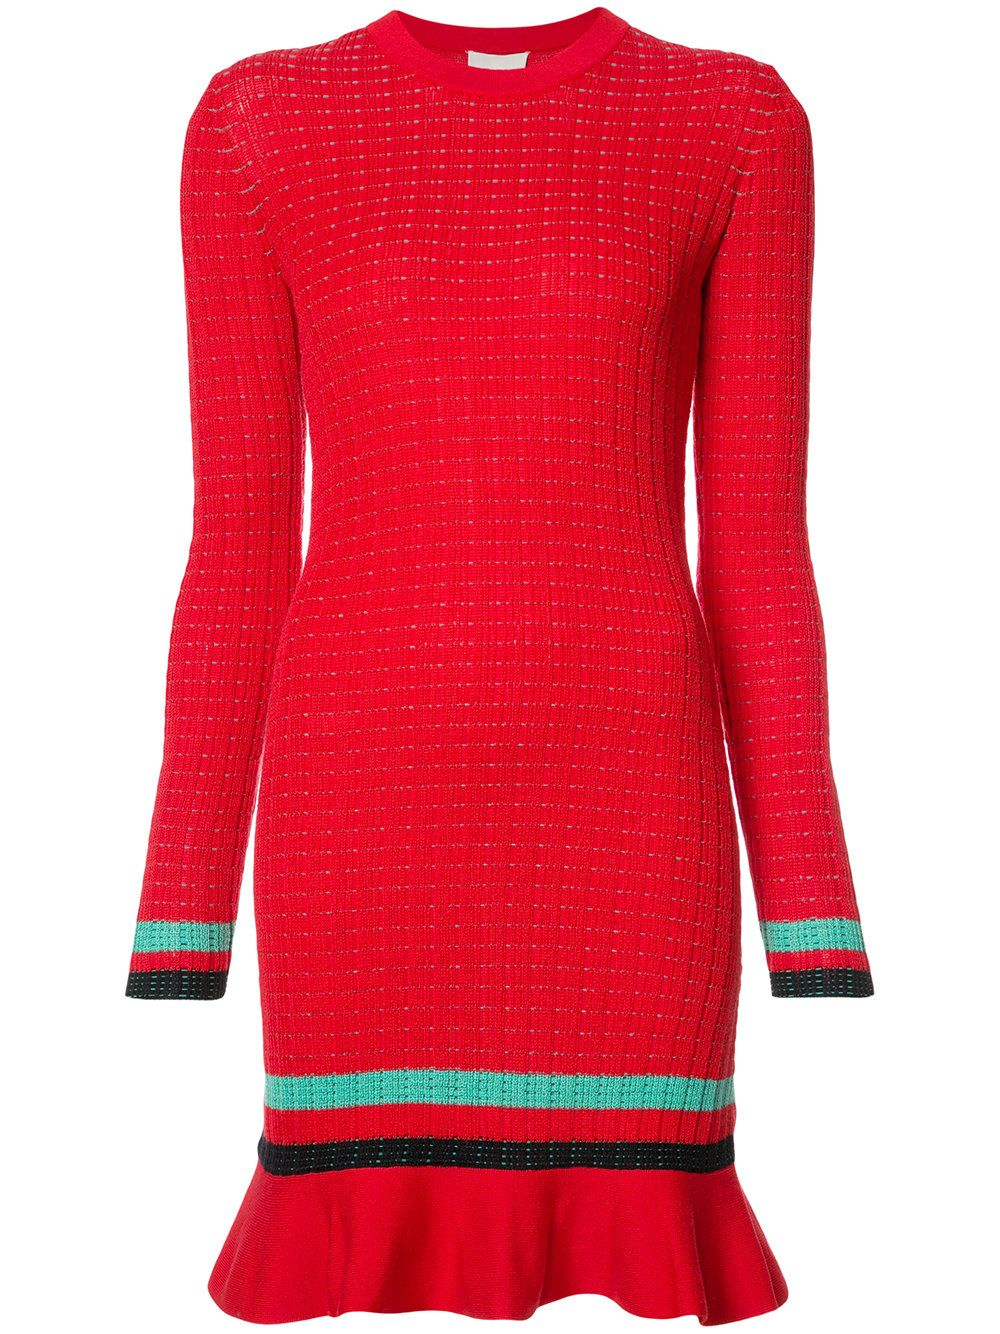 Red stretch cotton long sleeve knit dress from 3.1 Phillip Lim featuring a round neck, horizontal stripes, a short length and a peplum hem.